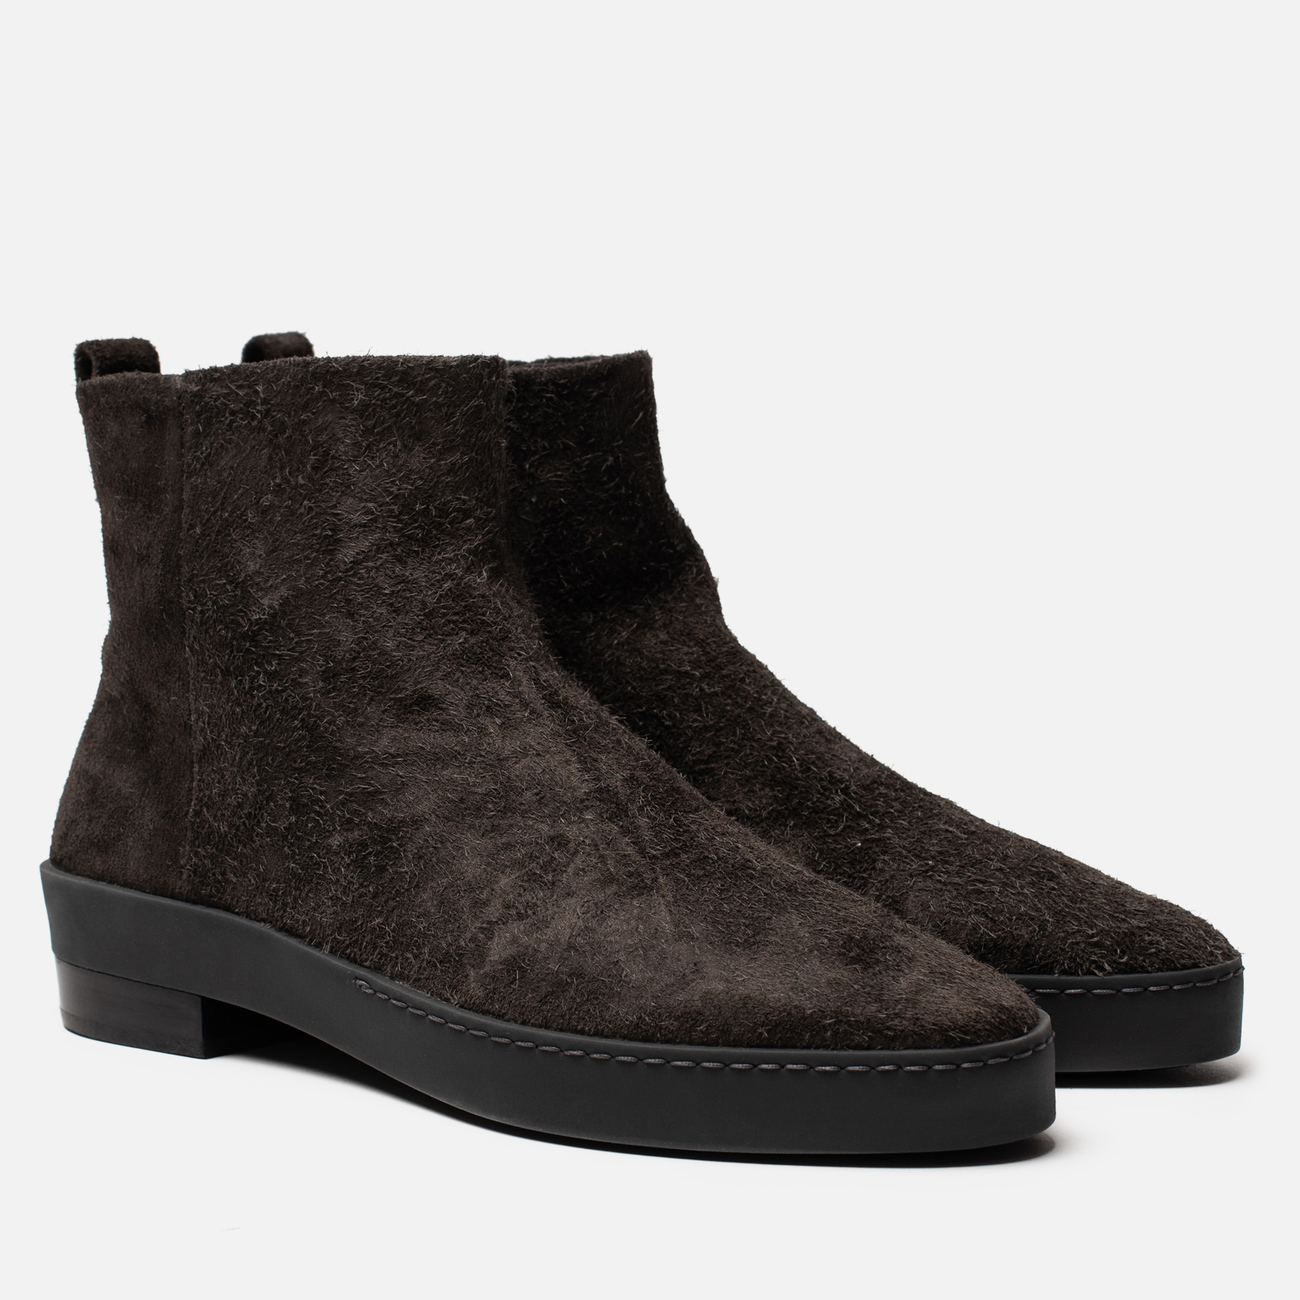 Мужские ботинки Fear of God Chelsea Santa Fe Rough Suede Anthracite